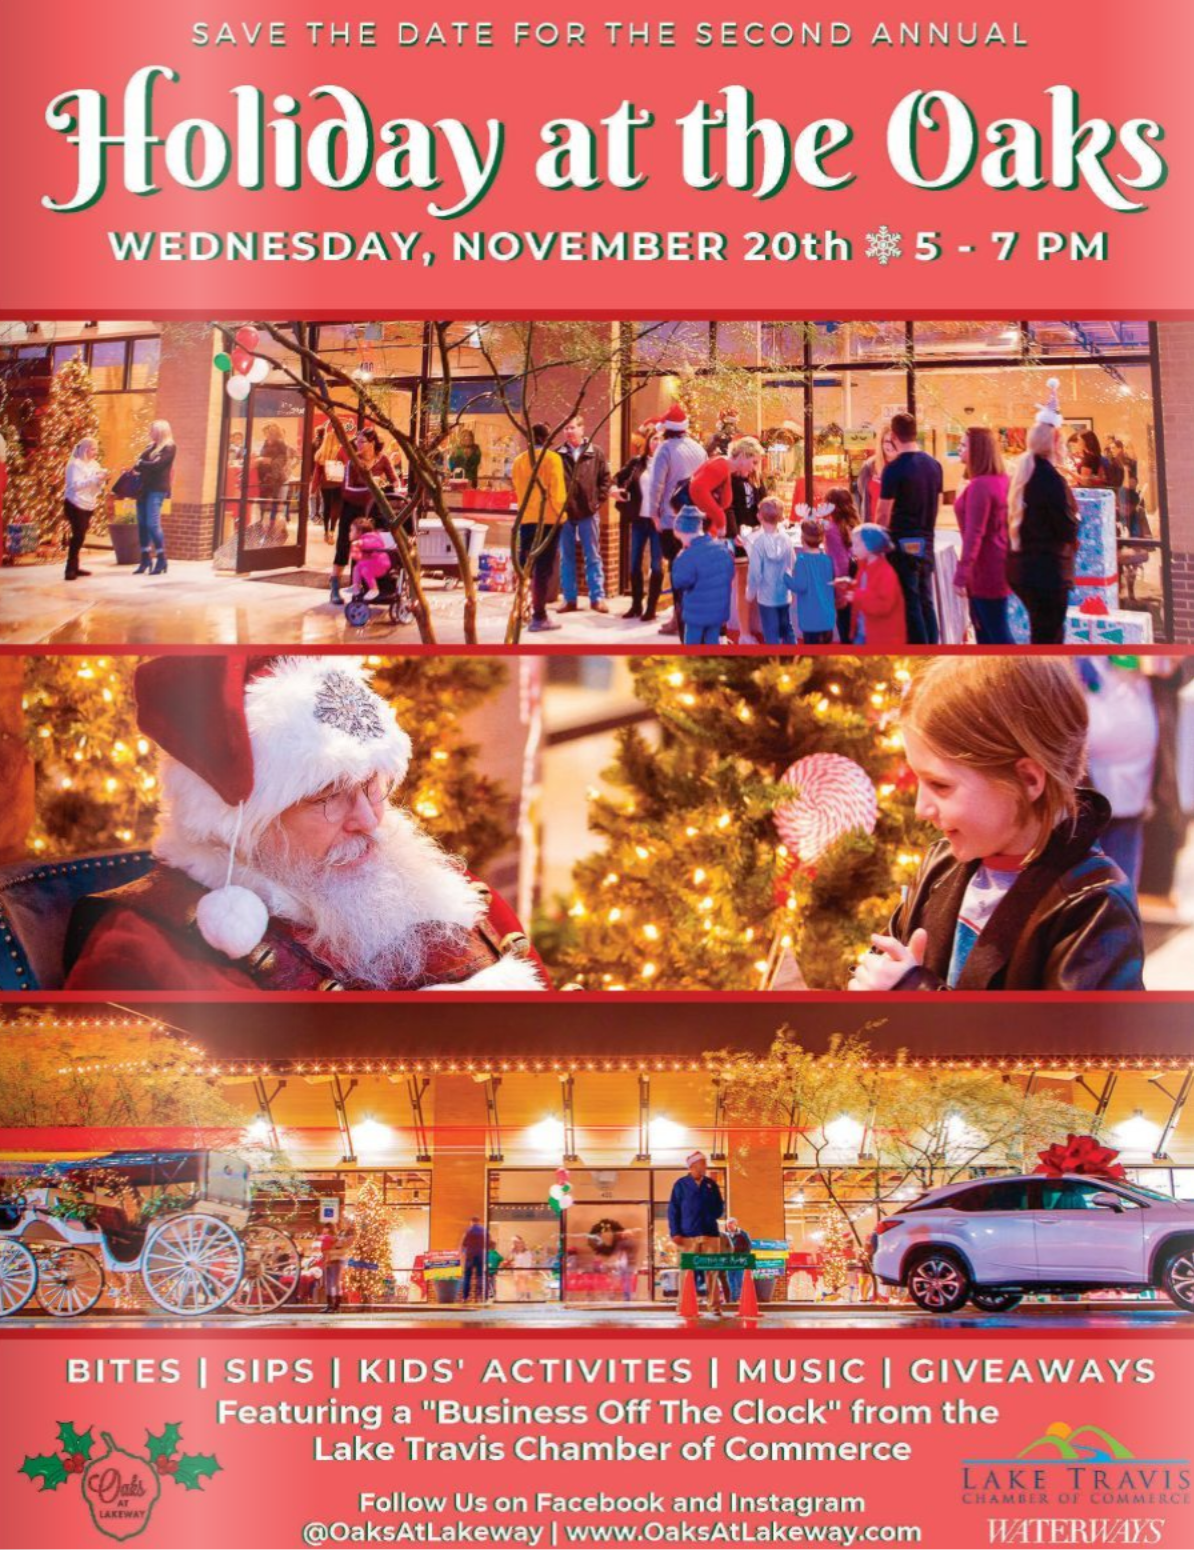 Save the Date for Holiday at the Oaks! -